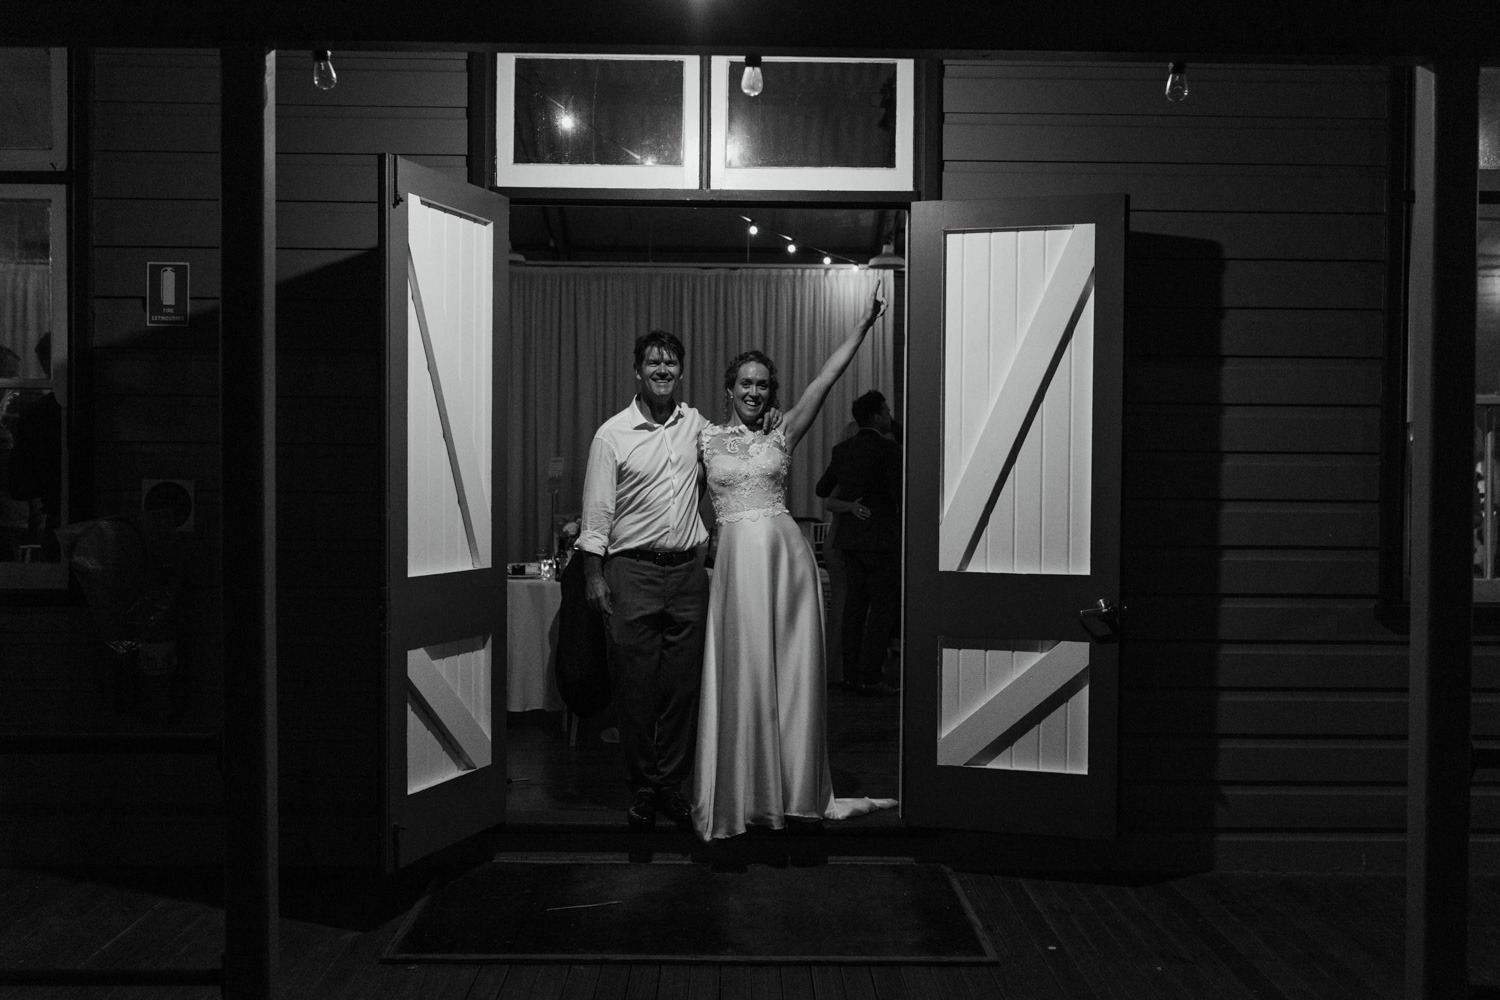 Victoria-&-Evan-Wedding-Carmen-Glenn-Photography-118